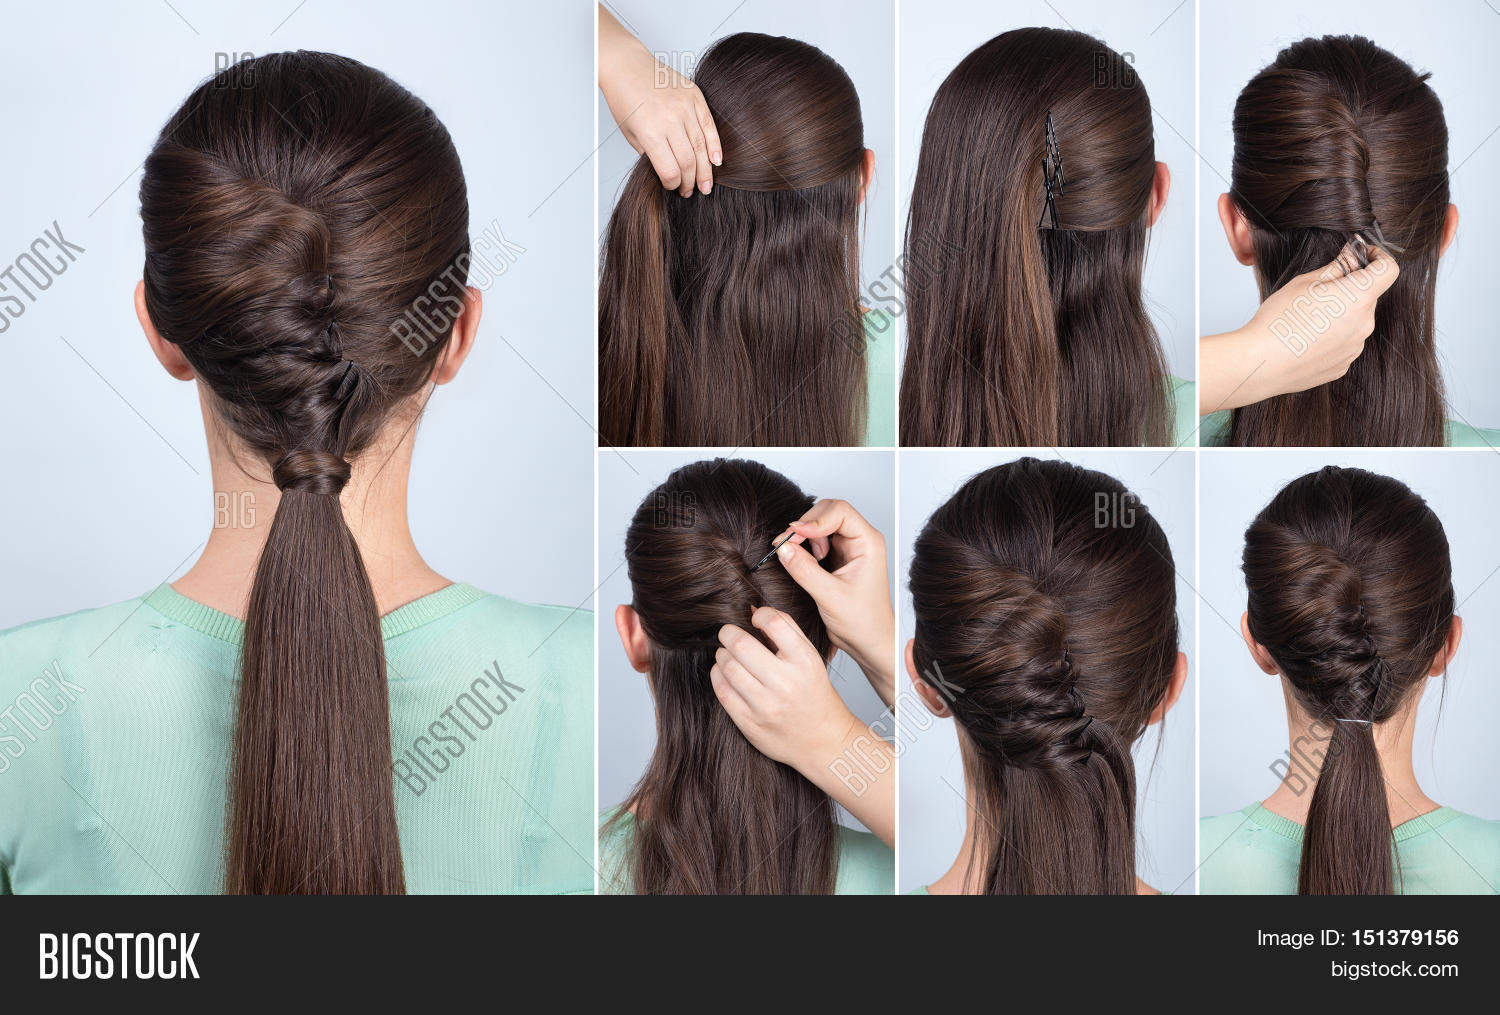 simple hairstyle ponytail with twist hair tutorial step by step